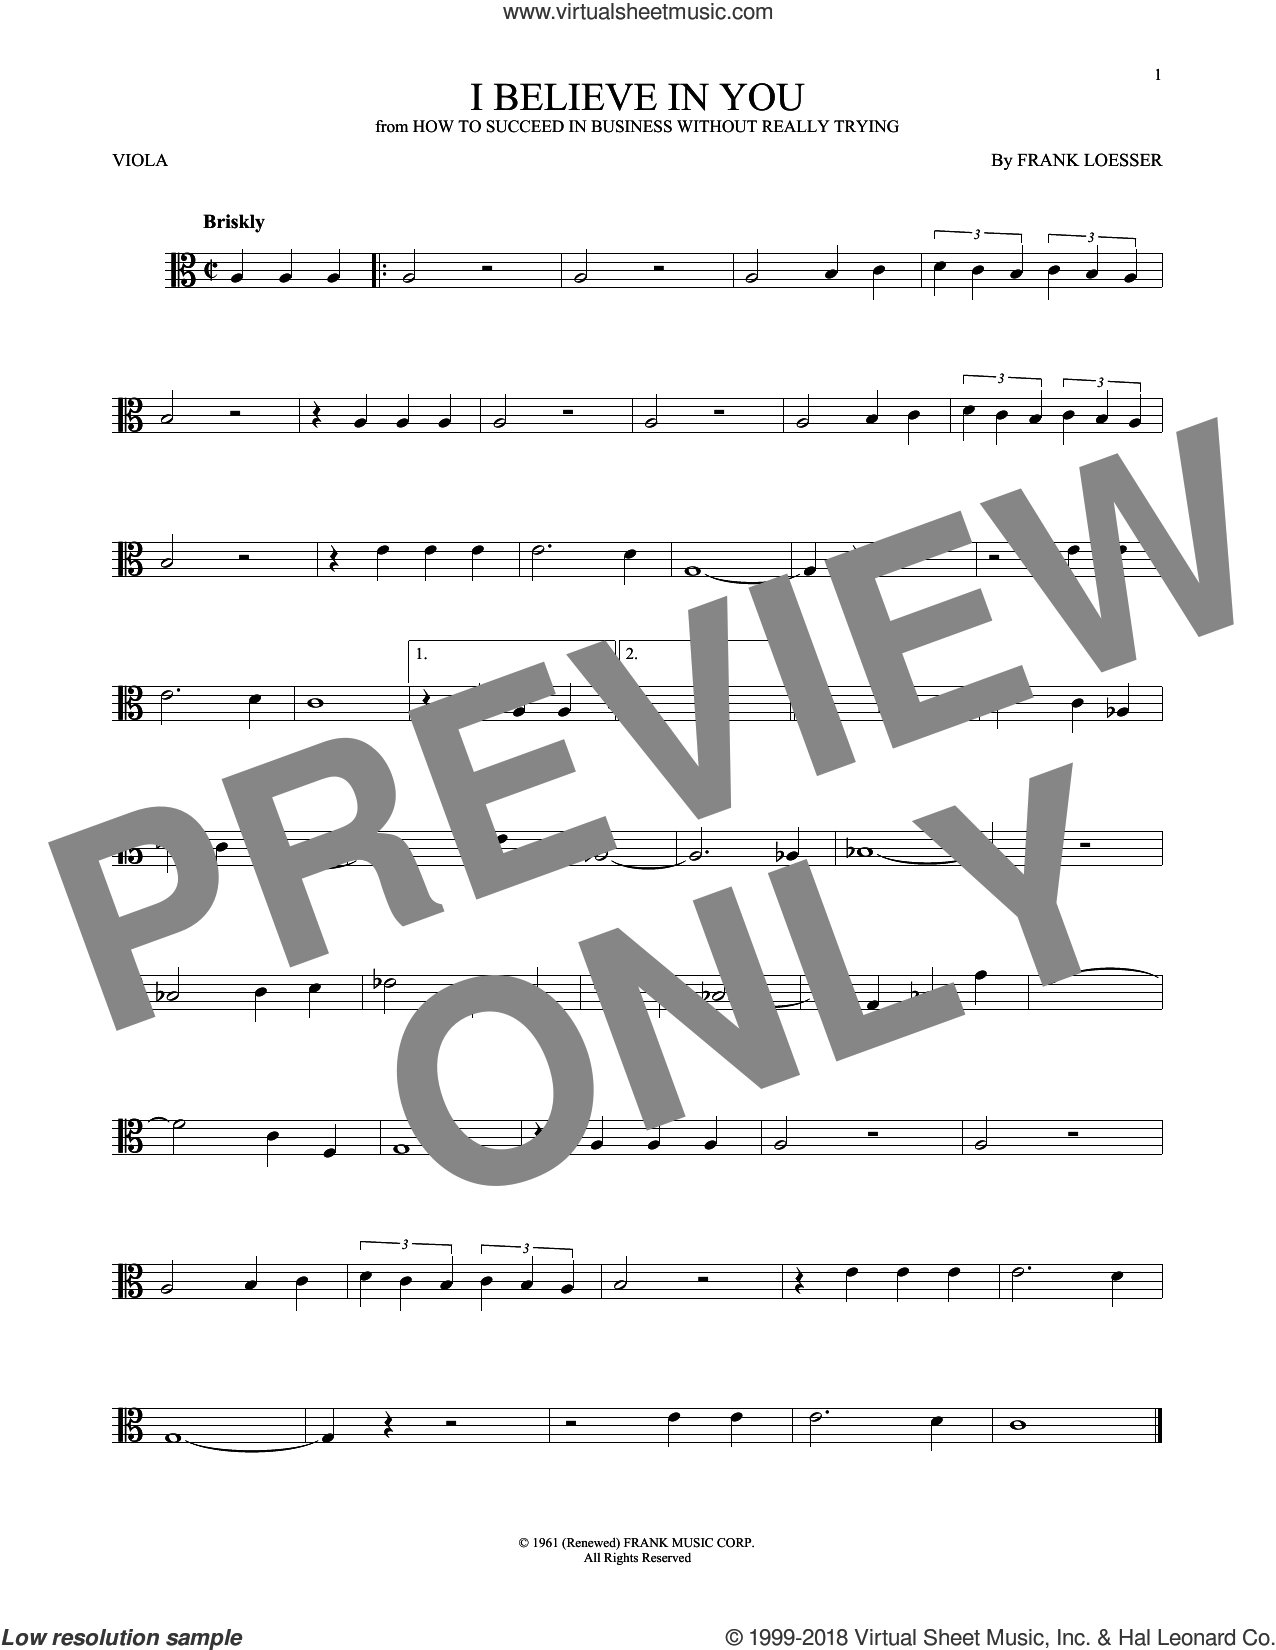 I Believe In You sheet music for viola solo by Frank Loesser, intermediate skill level